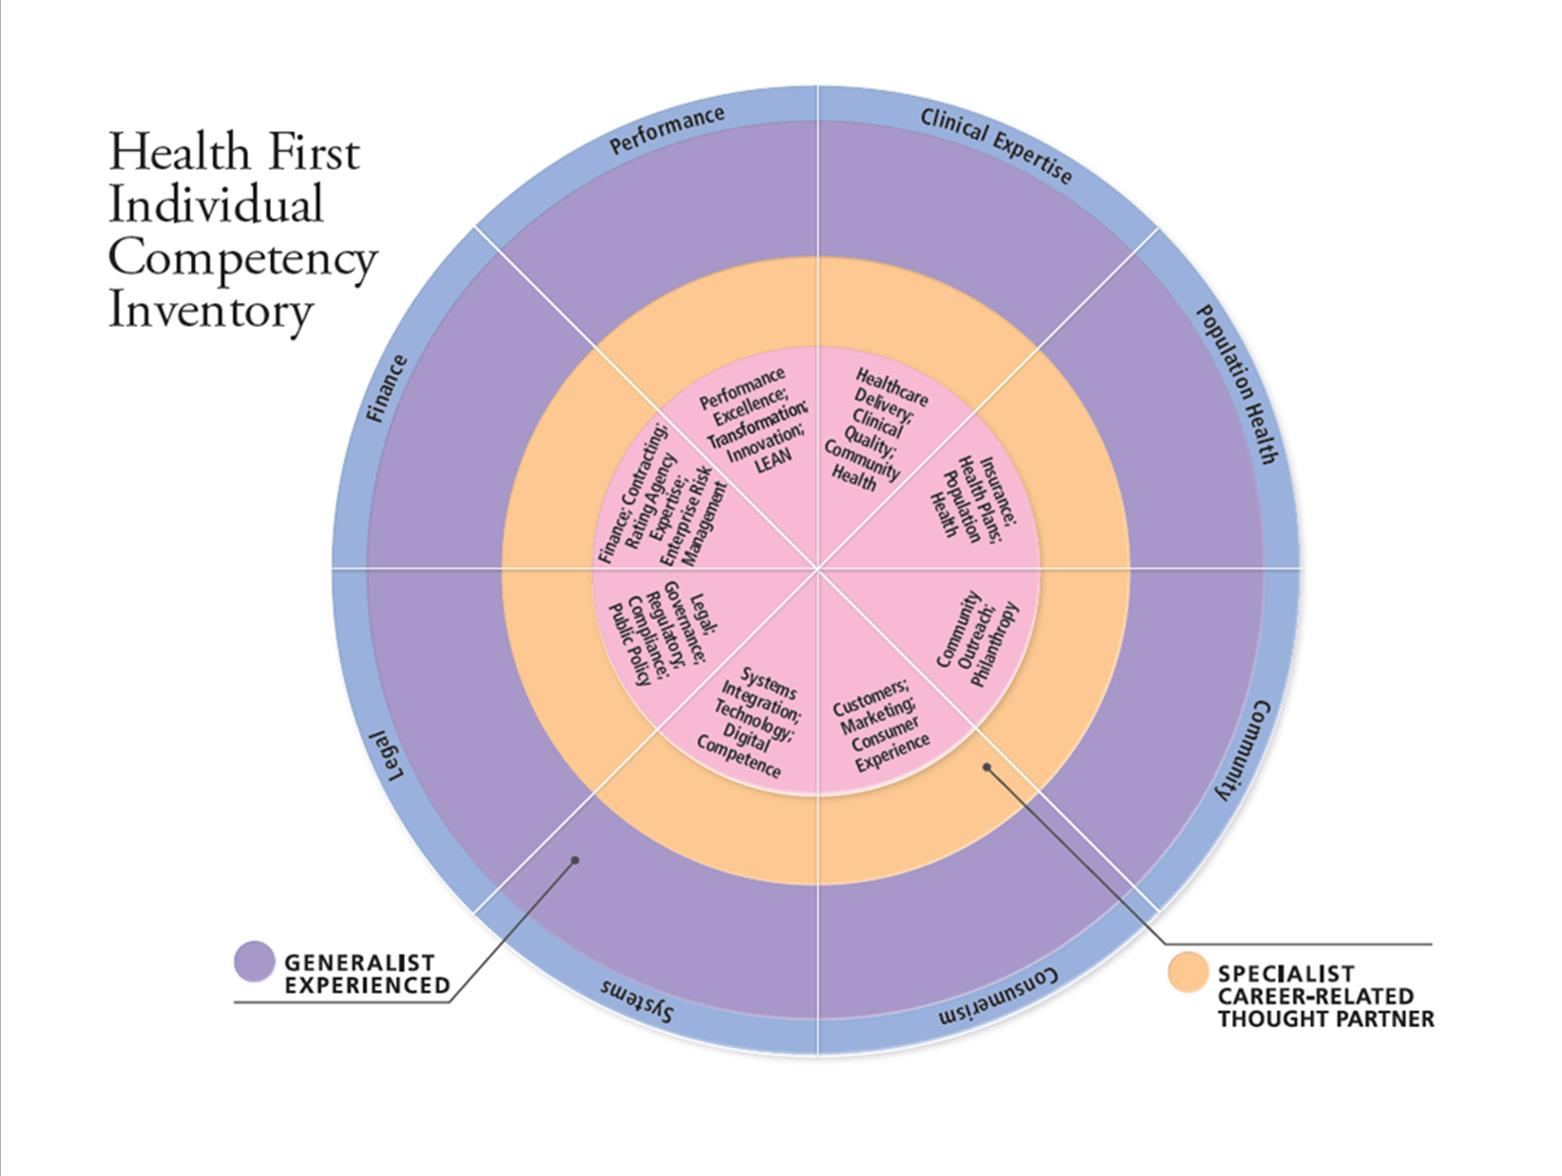 Health First Individual Competency Inventory